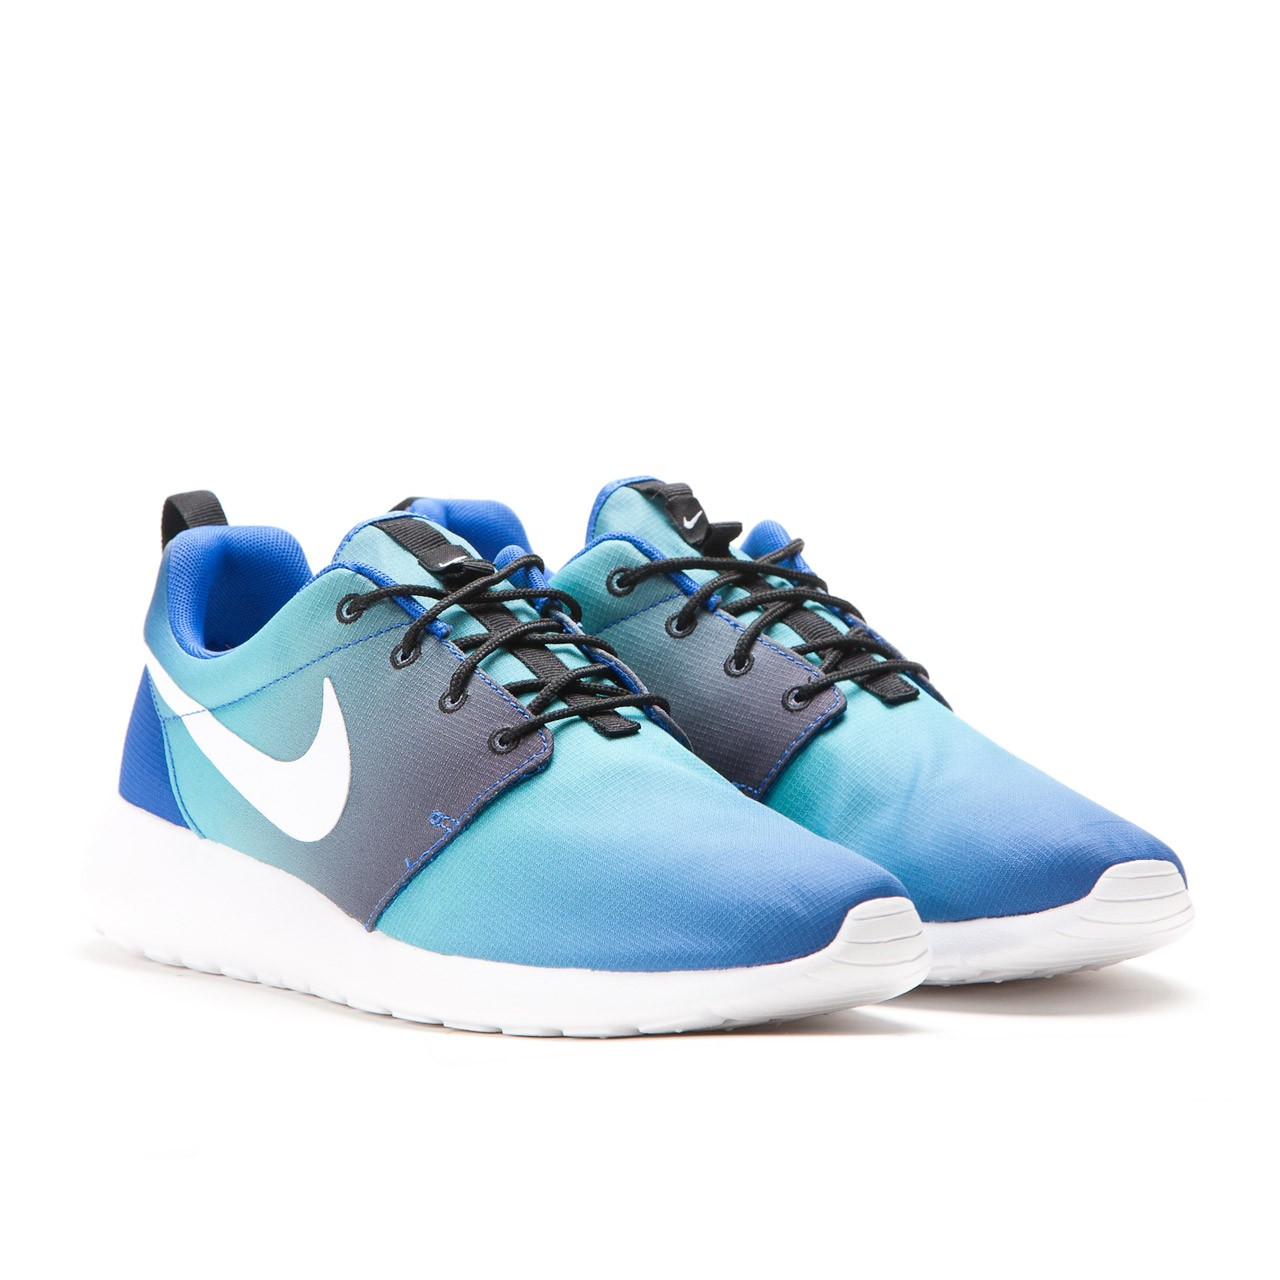 nike roshe run print game royal white light retro rh juiceonline com nike roshe run game royal nike roshe run mens royal blue